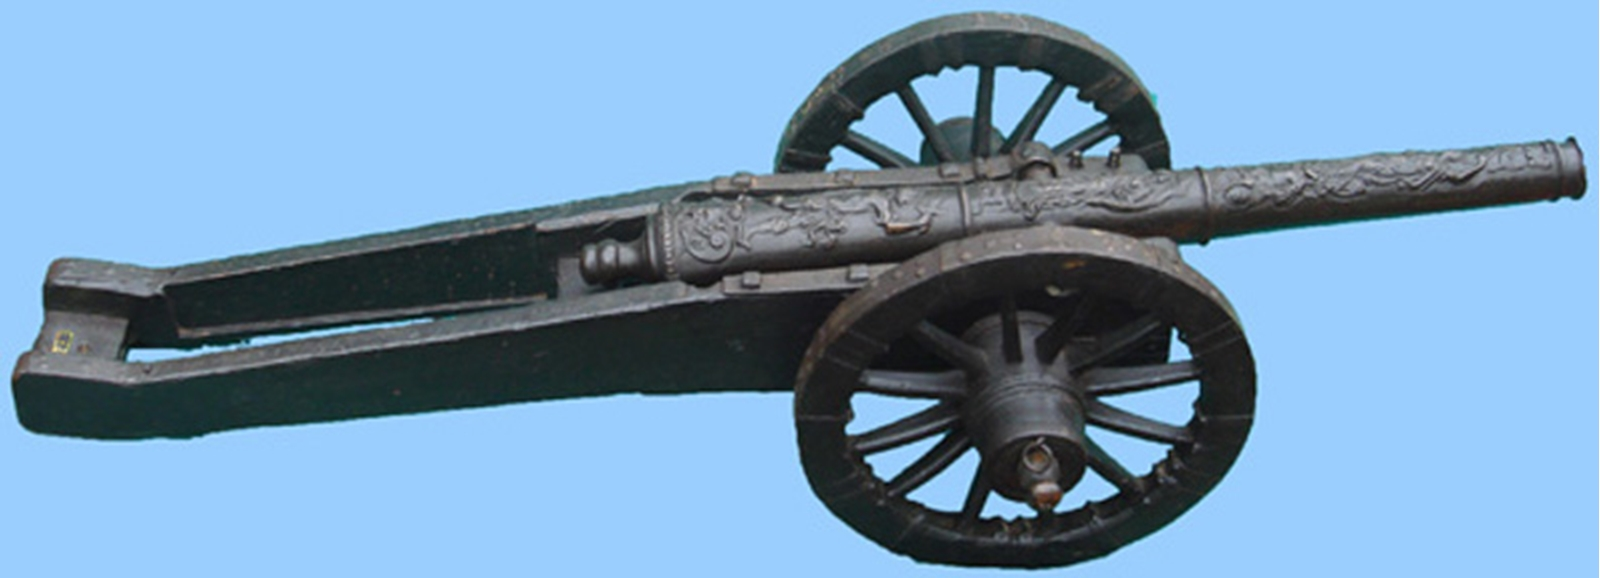 G431 Antique Miniature Bronze Cannon - World Wide Arms